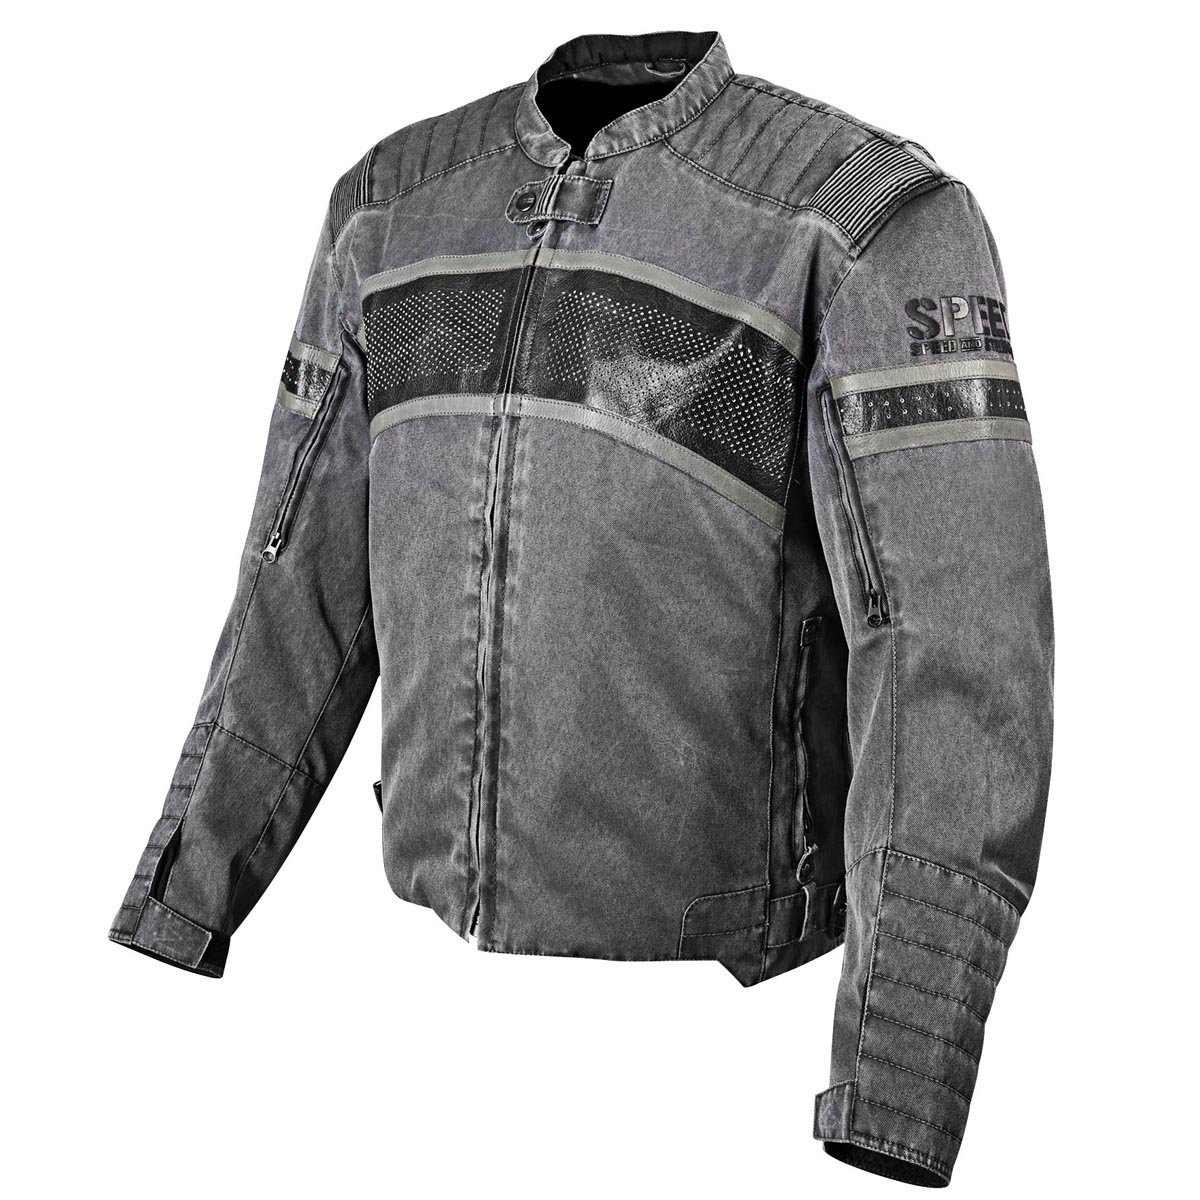 Speed and Strength Cruise Missile Men's Motorcycle Textile/Leather Jacket (Vintage Black, Large) 0